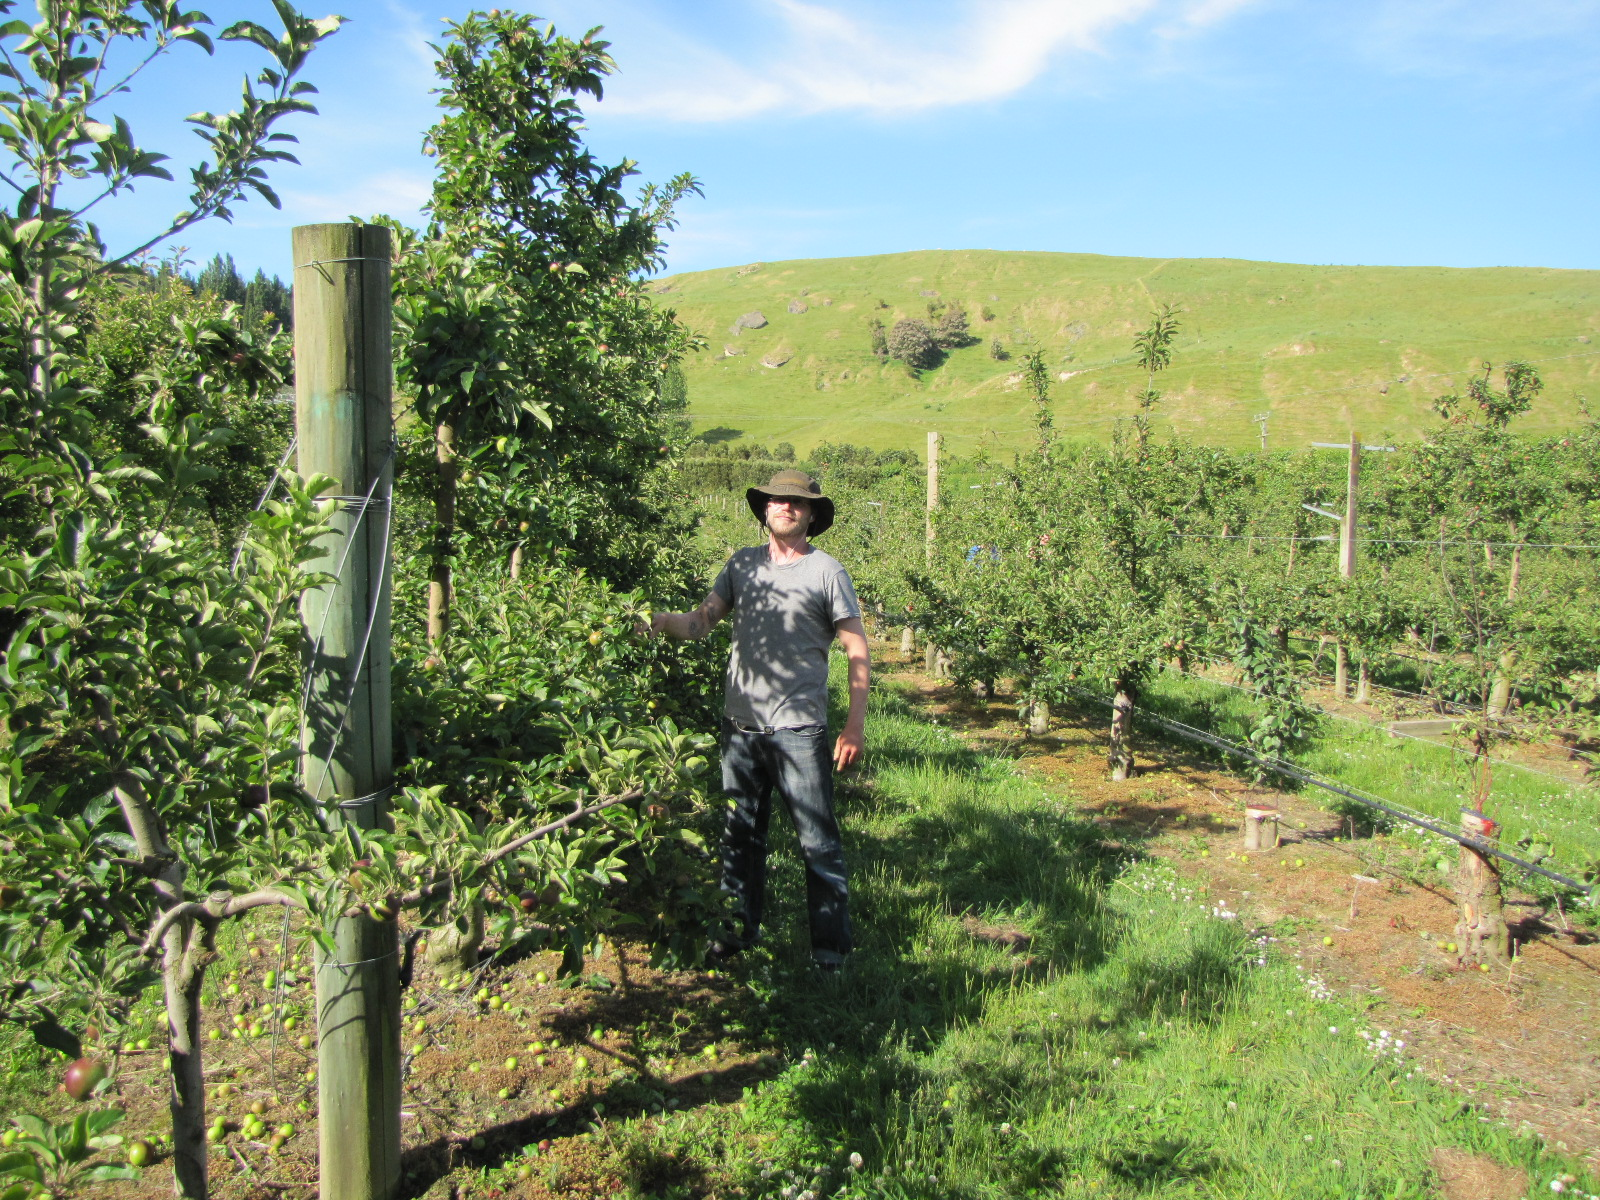 Picture of me standing in an apple orchard in New Zealand. I'm wearing a floppy hat, dirty T-shirt and jeans. In the distance behind the orchard are rolling hills.